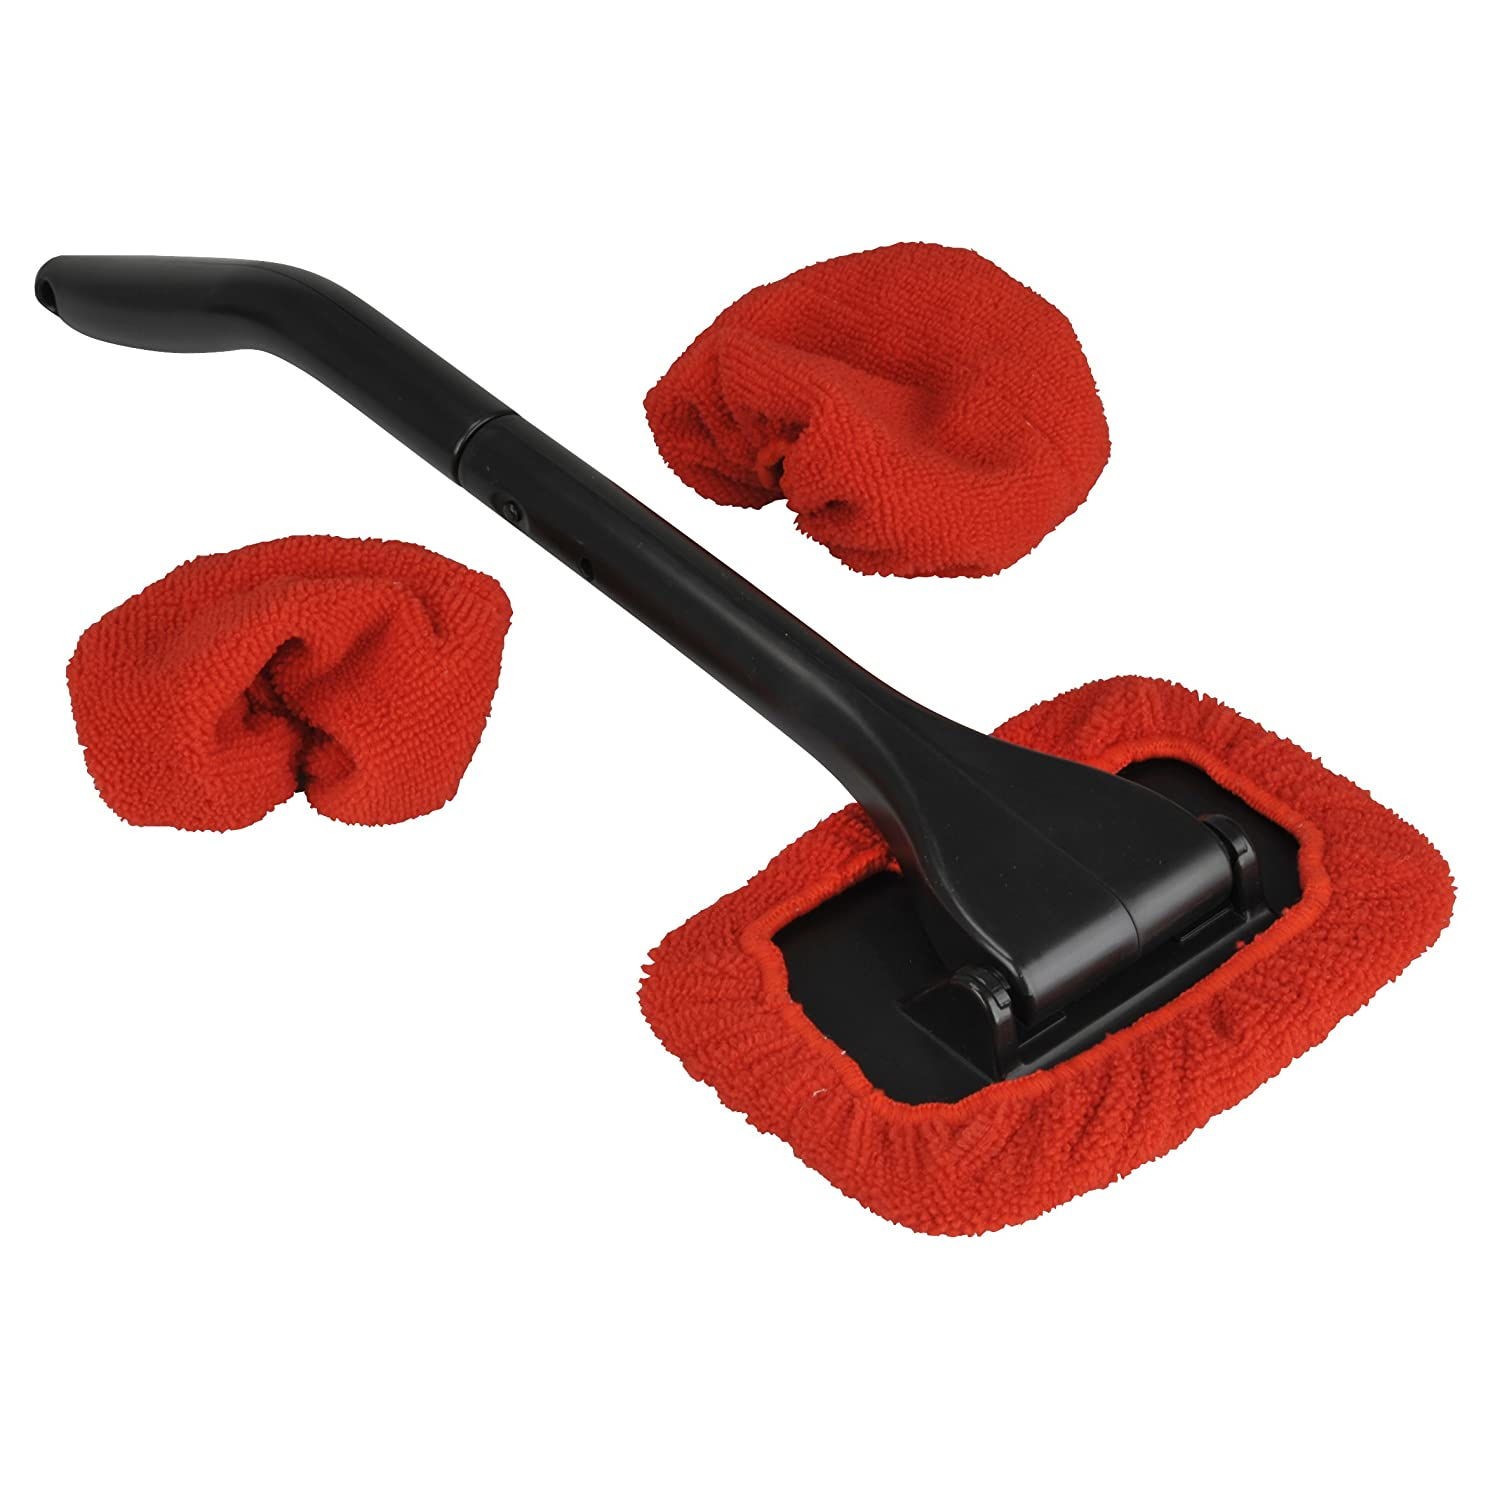 NIGRIN 71143 windshield cleaner with Microfiber Pad